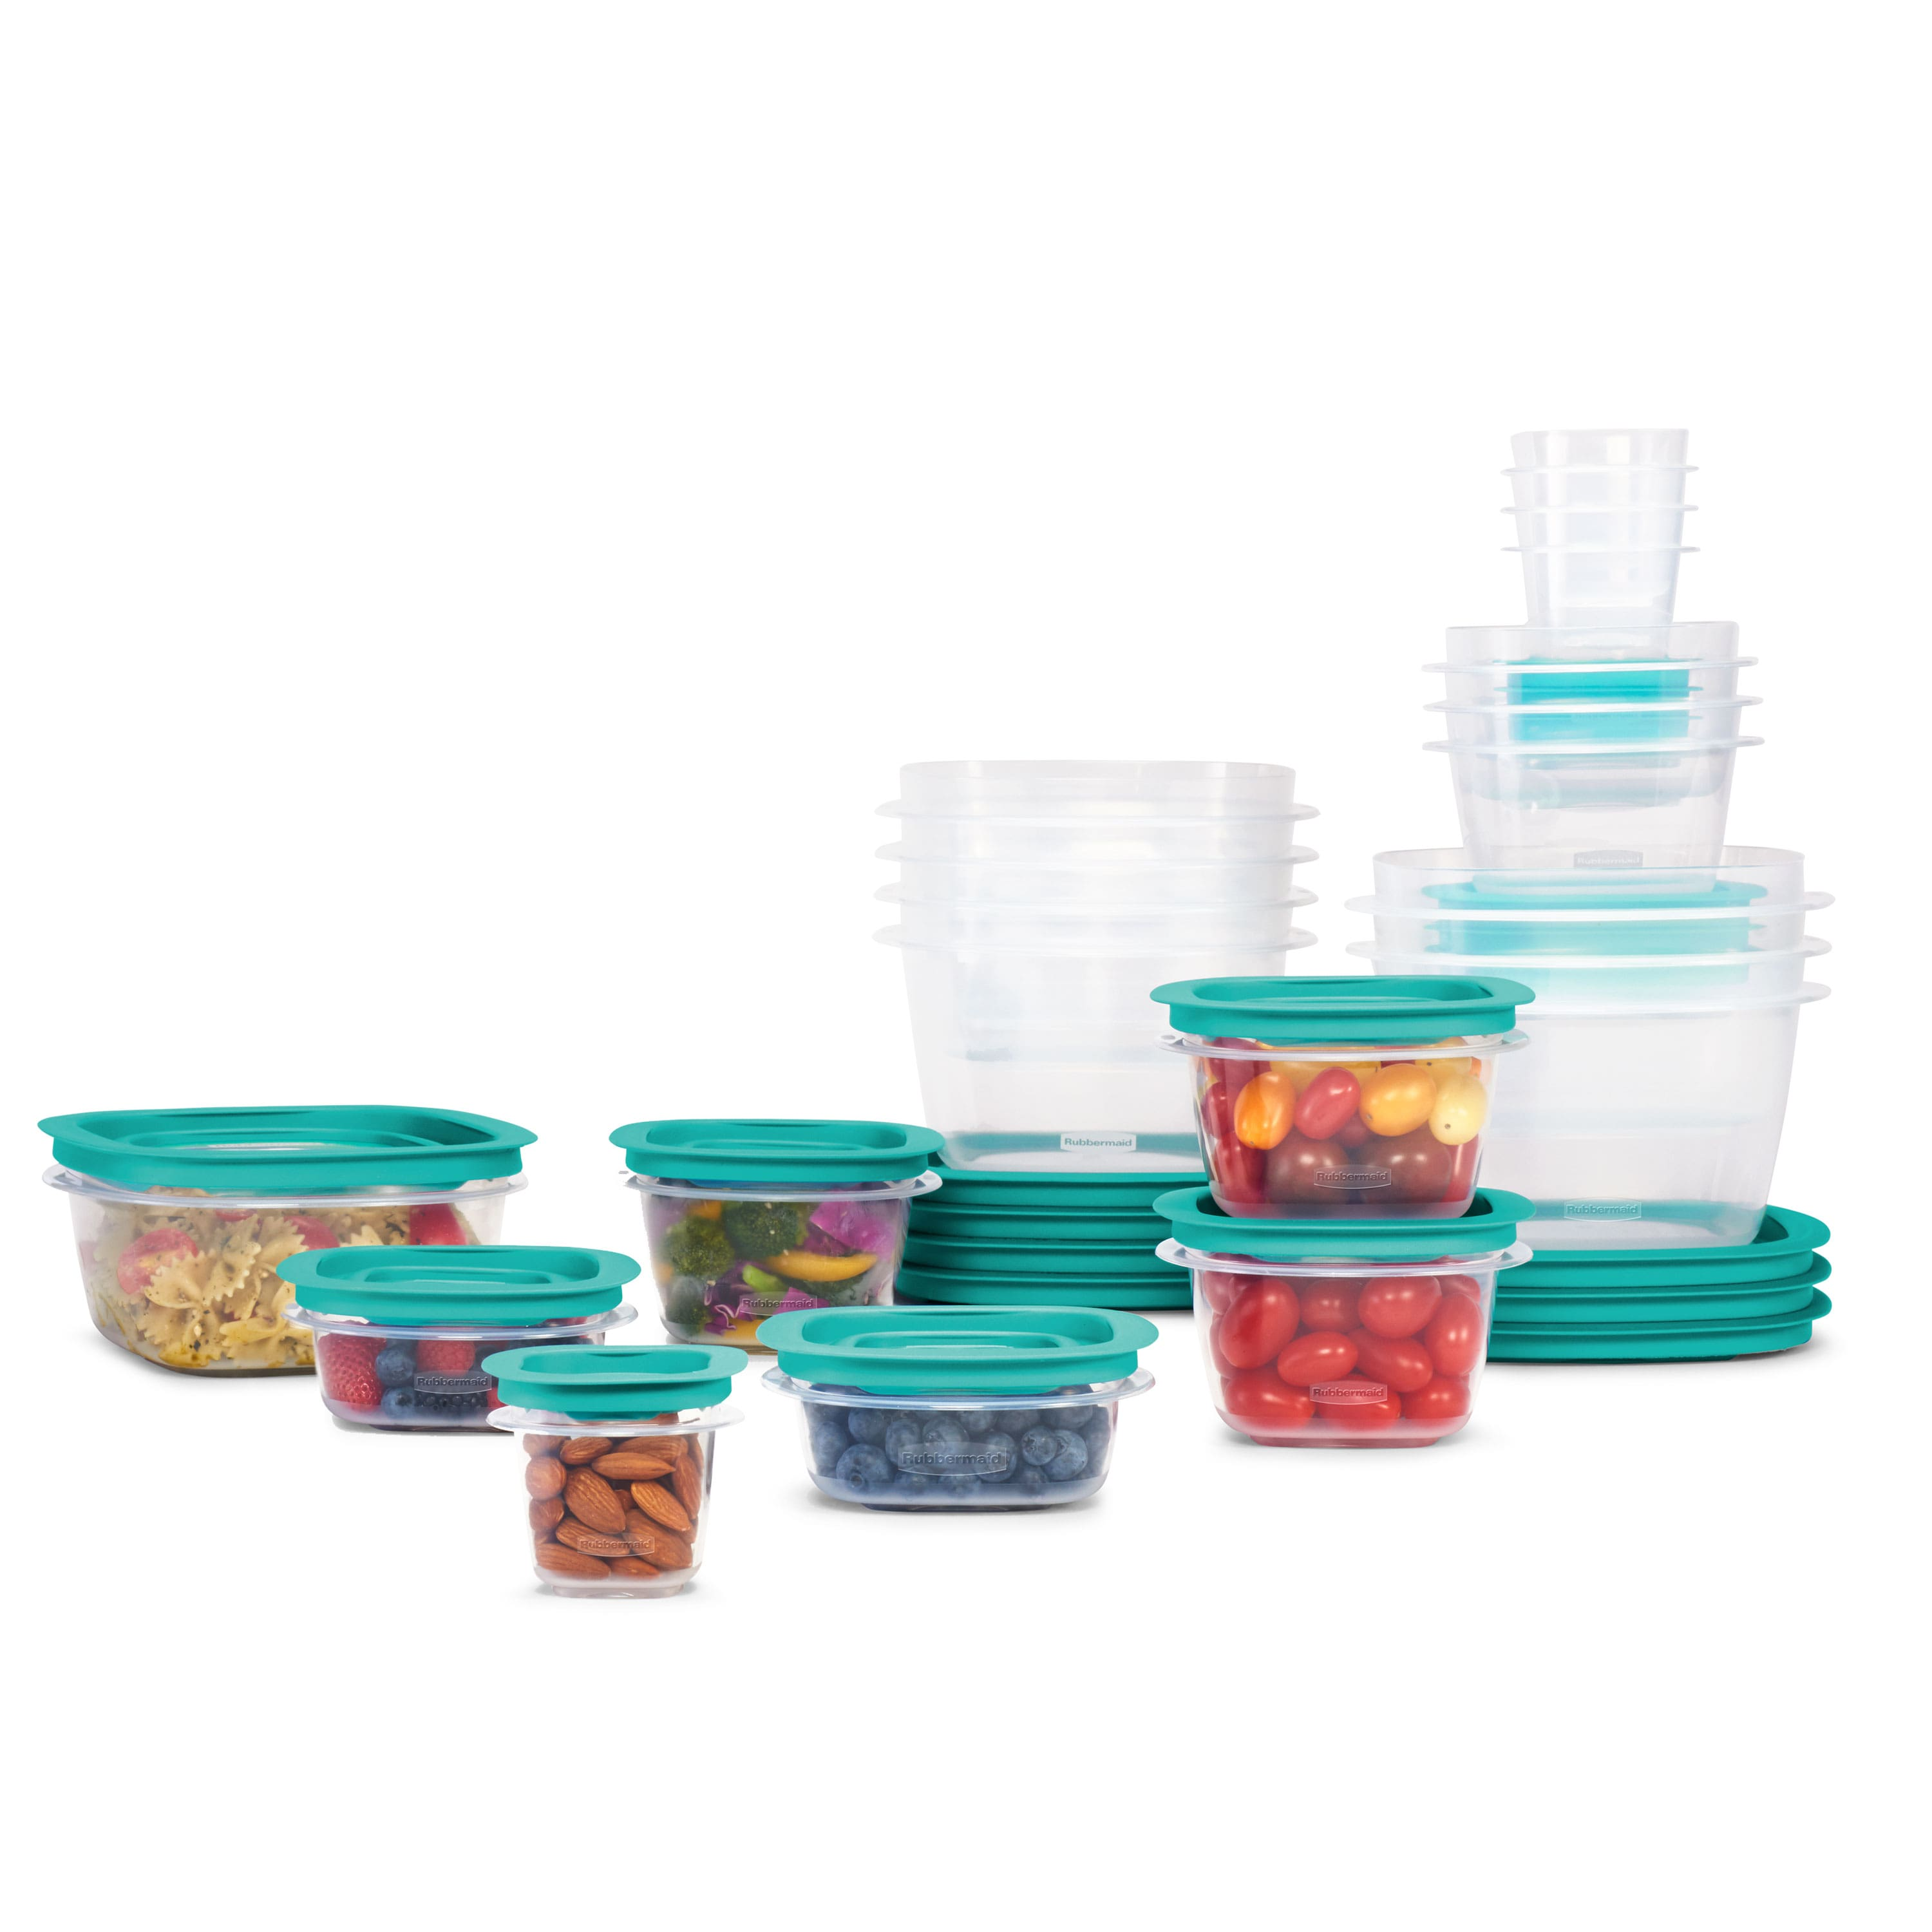 42-Count Rubbermaid Press & Lock Food Storage Containers for $20 + Free Store Pickup at Walmart